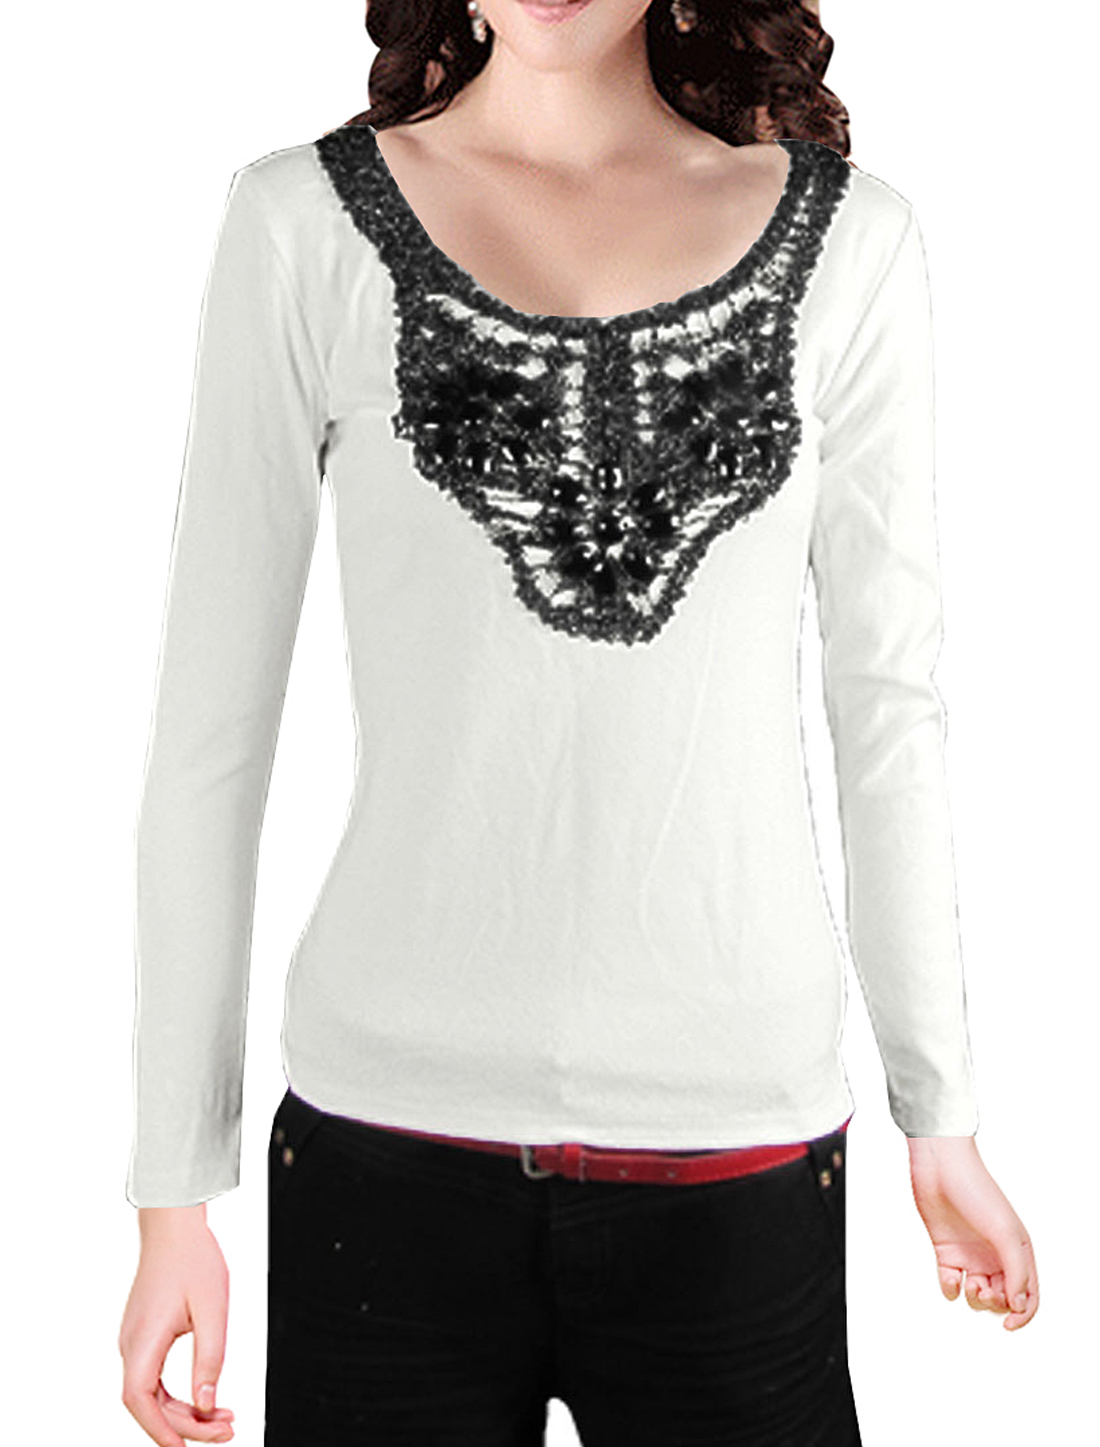 Size XS White Long Sleeve Bead Decor Cotton Shirt for Ladies